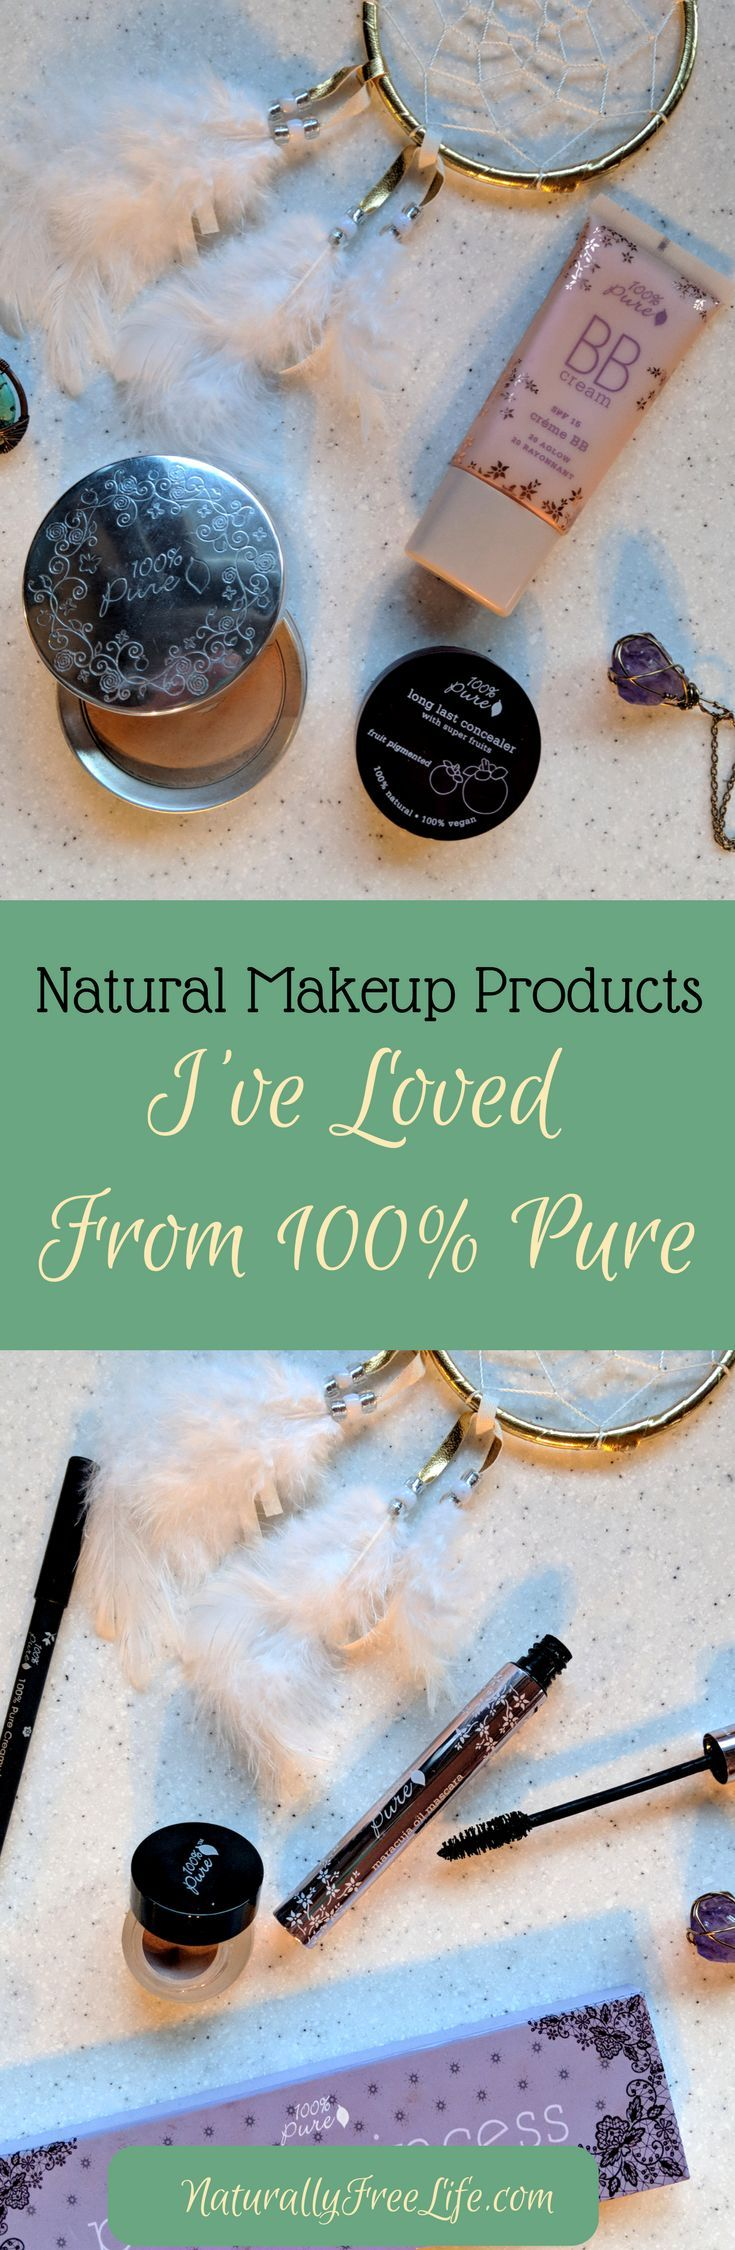 I've found some great natural, non-toxic makeup products at 100% Pure, a natural makeup company dedicated to clean beauty, purity, and quality! Read more at Naturally Free Life! #naturalmakeup #cleanbeauty